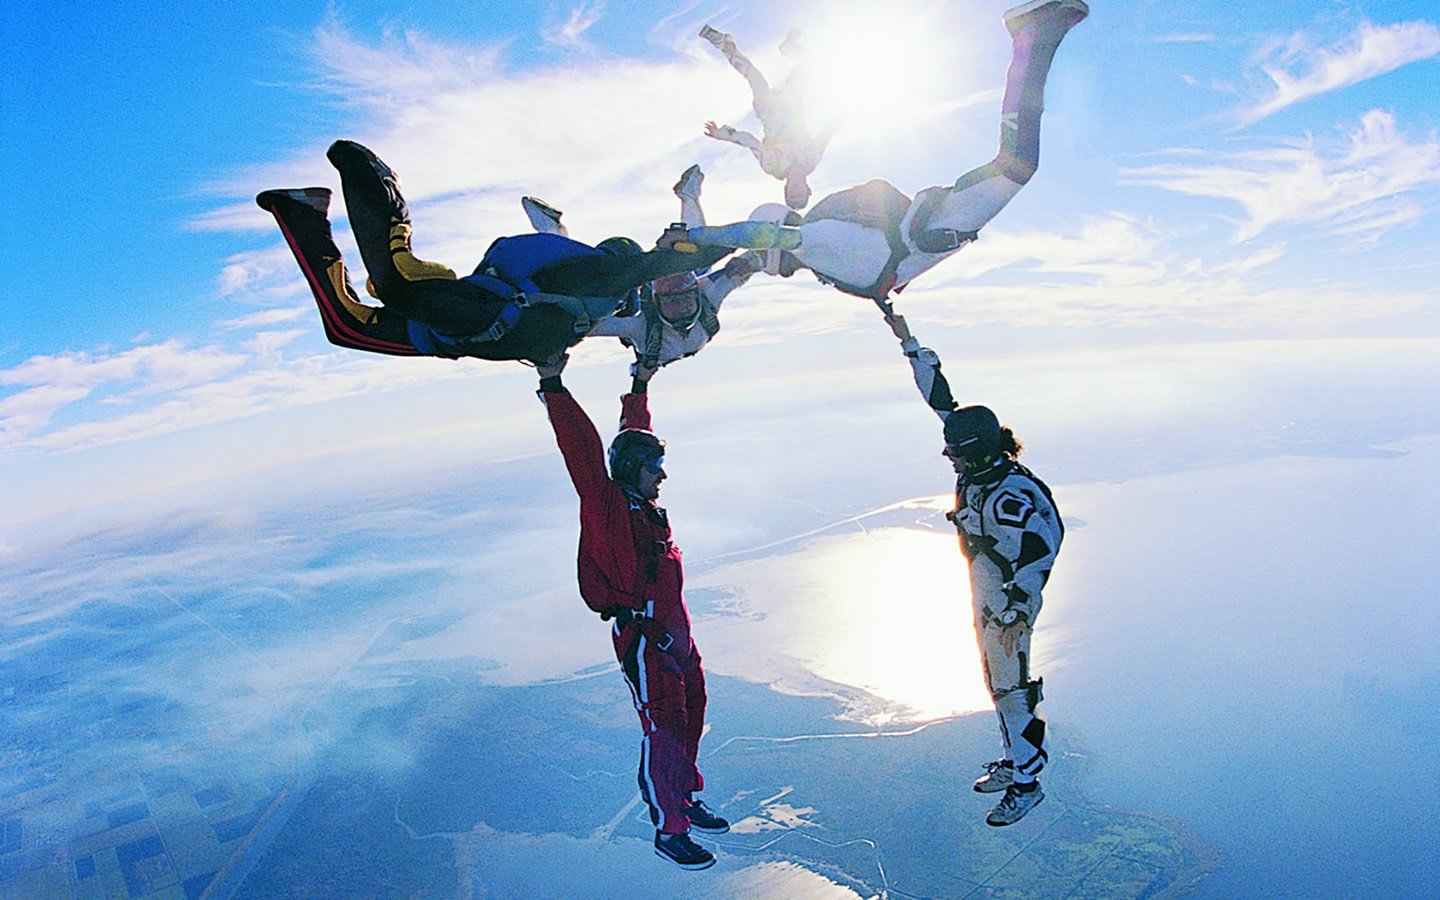 All New Pix1: Hd Wallpaper Skydive